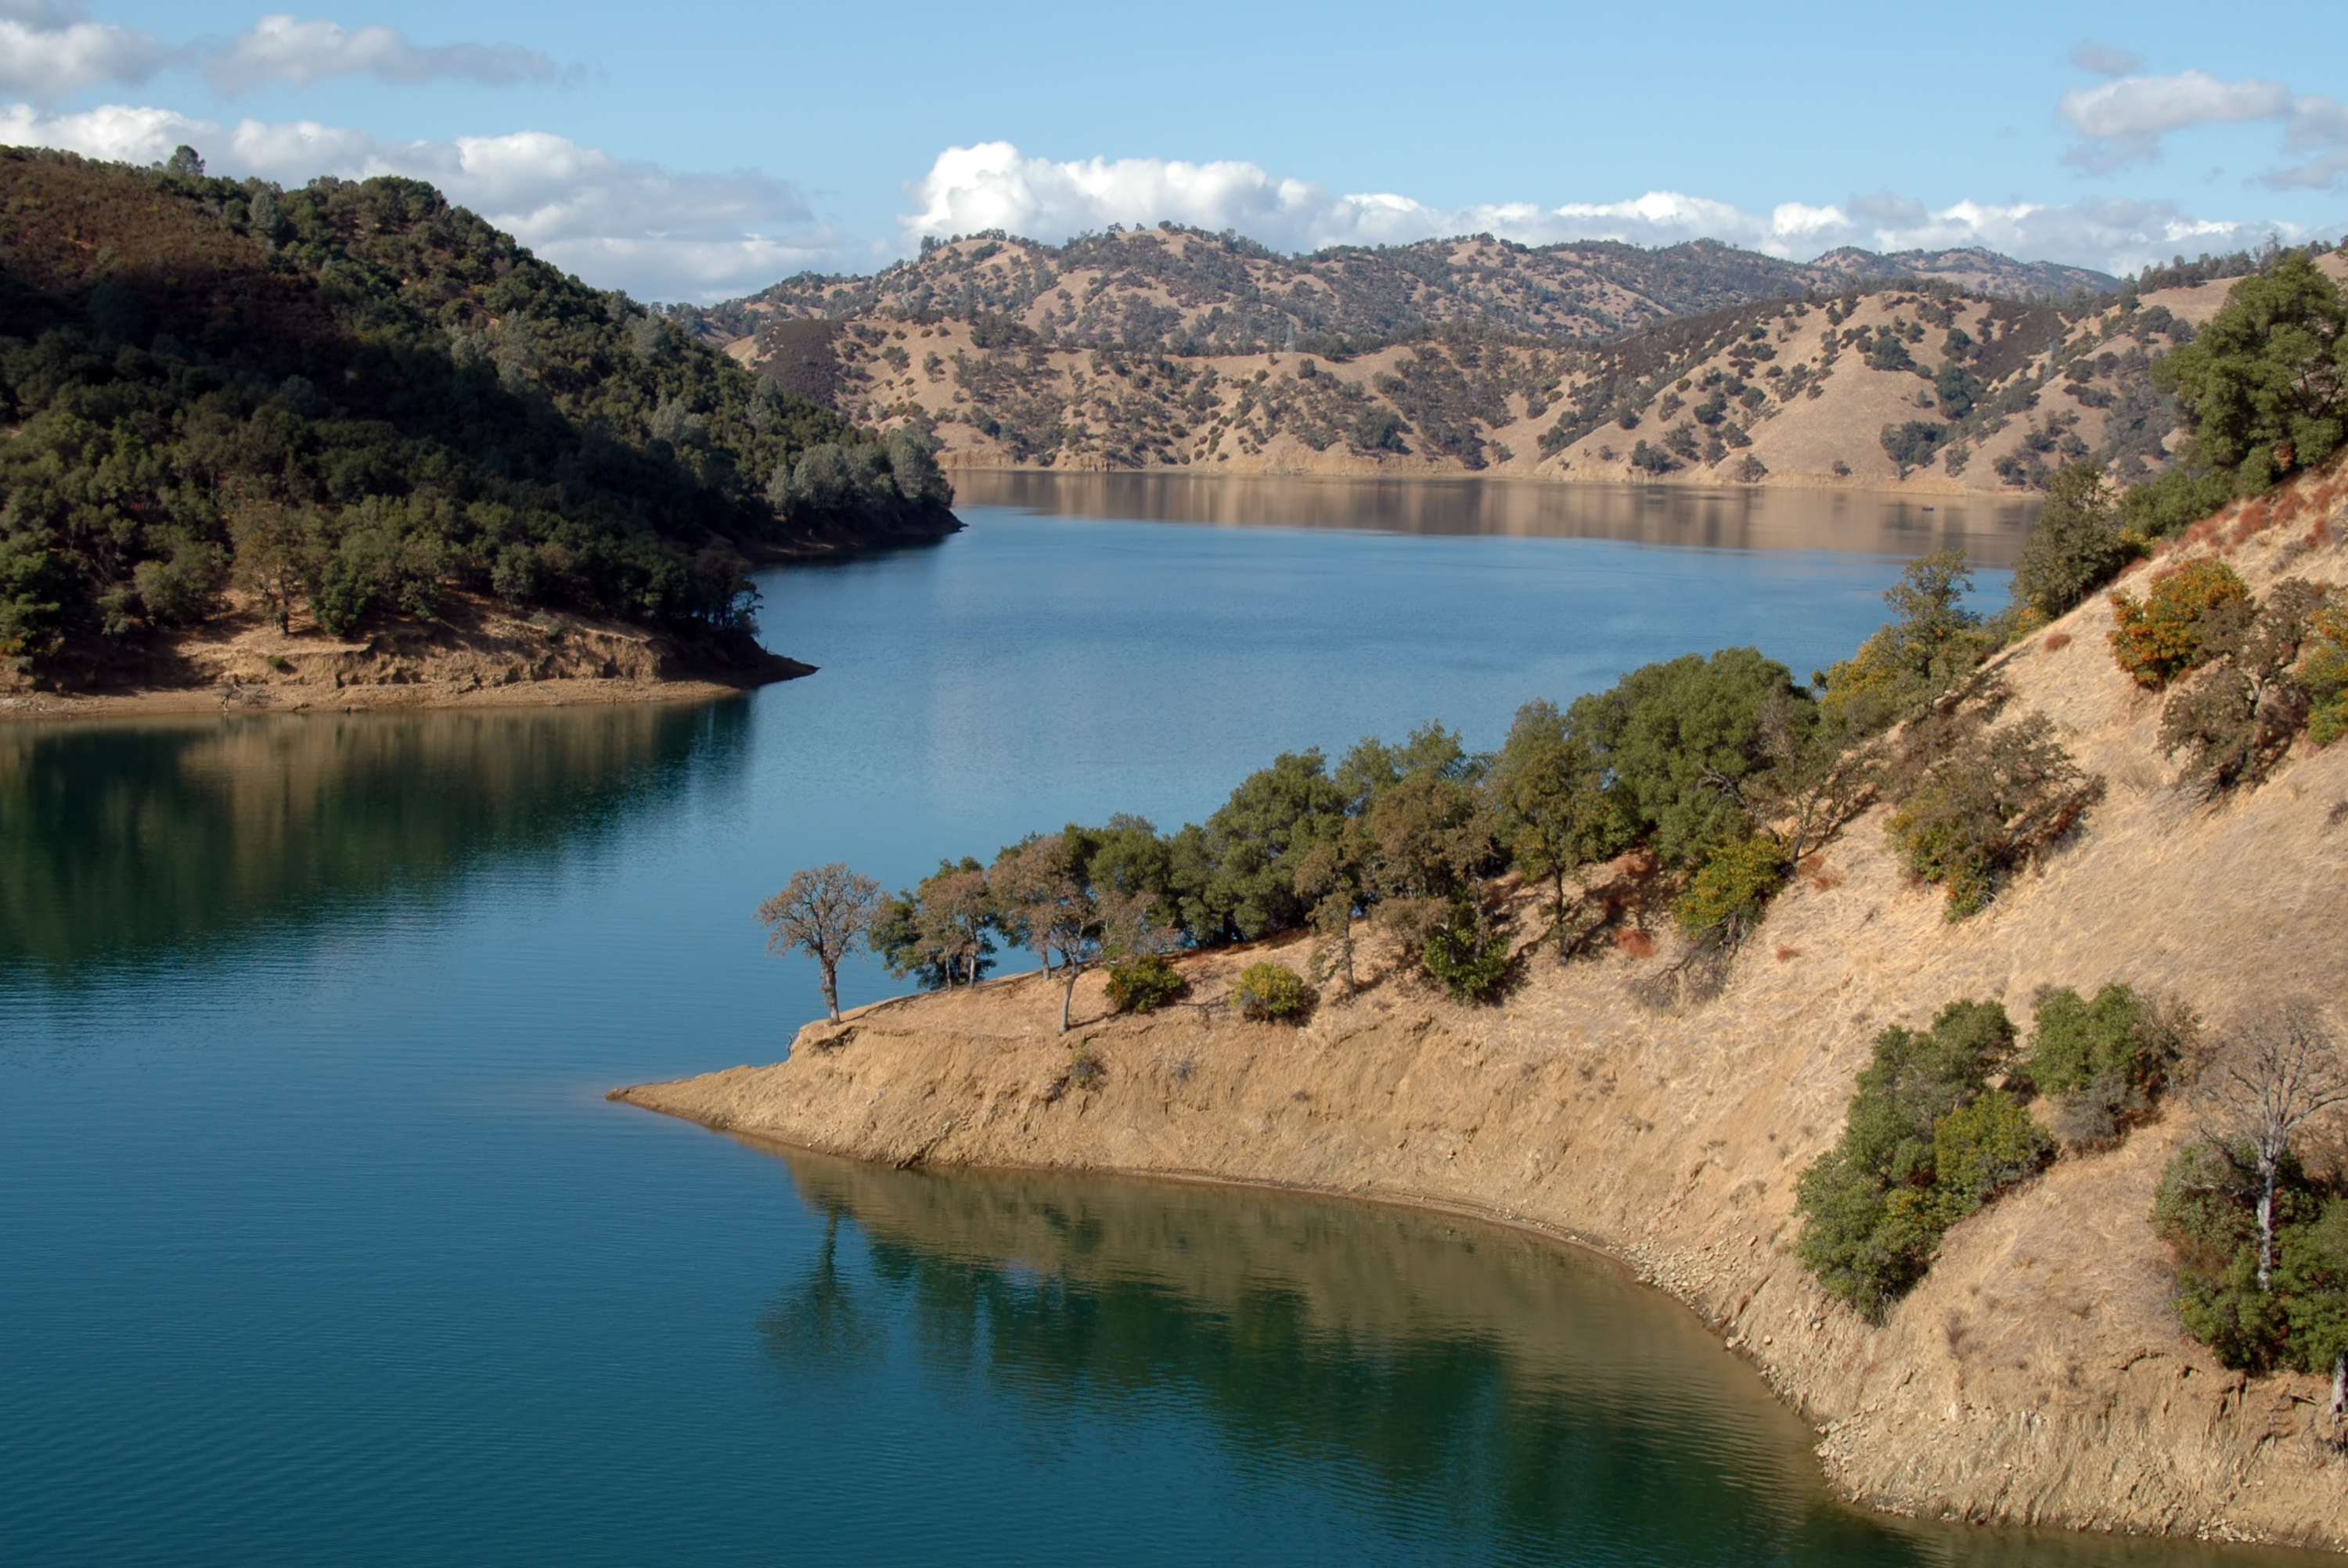 lake berryessa near napa